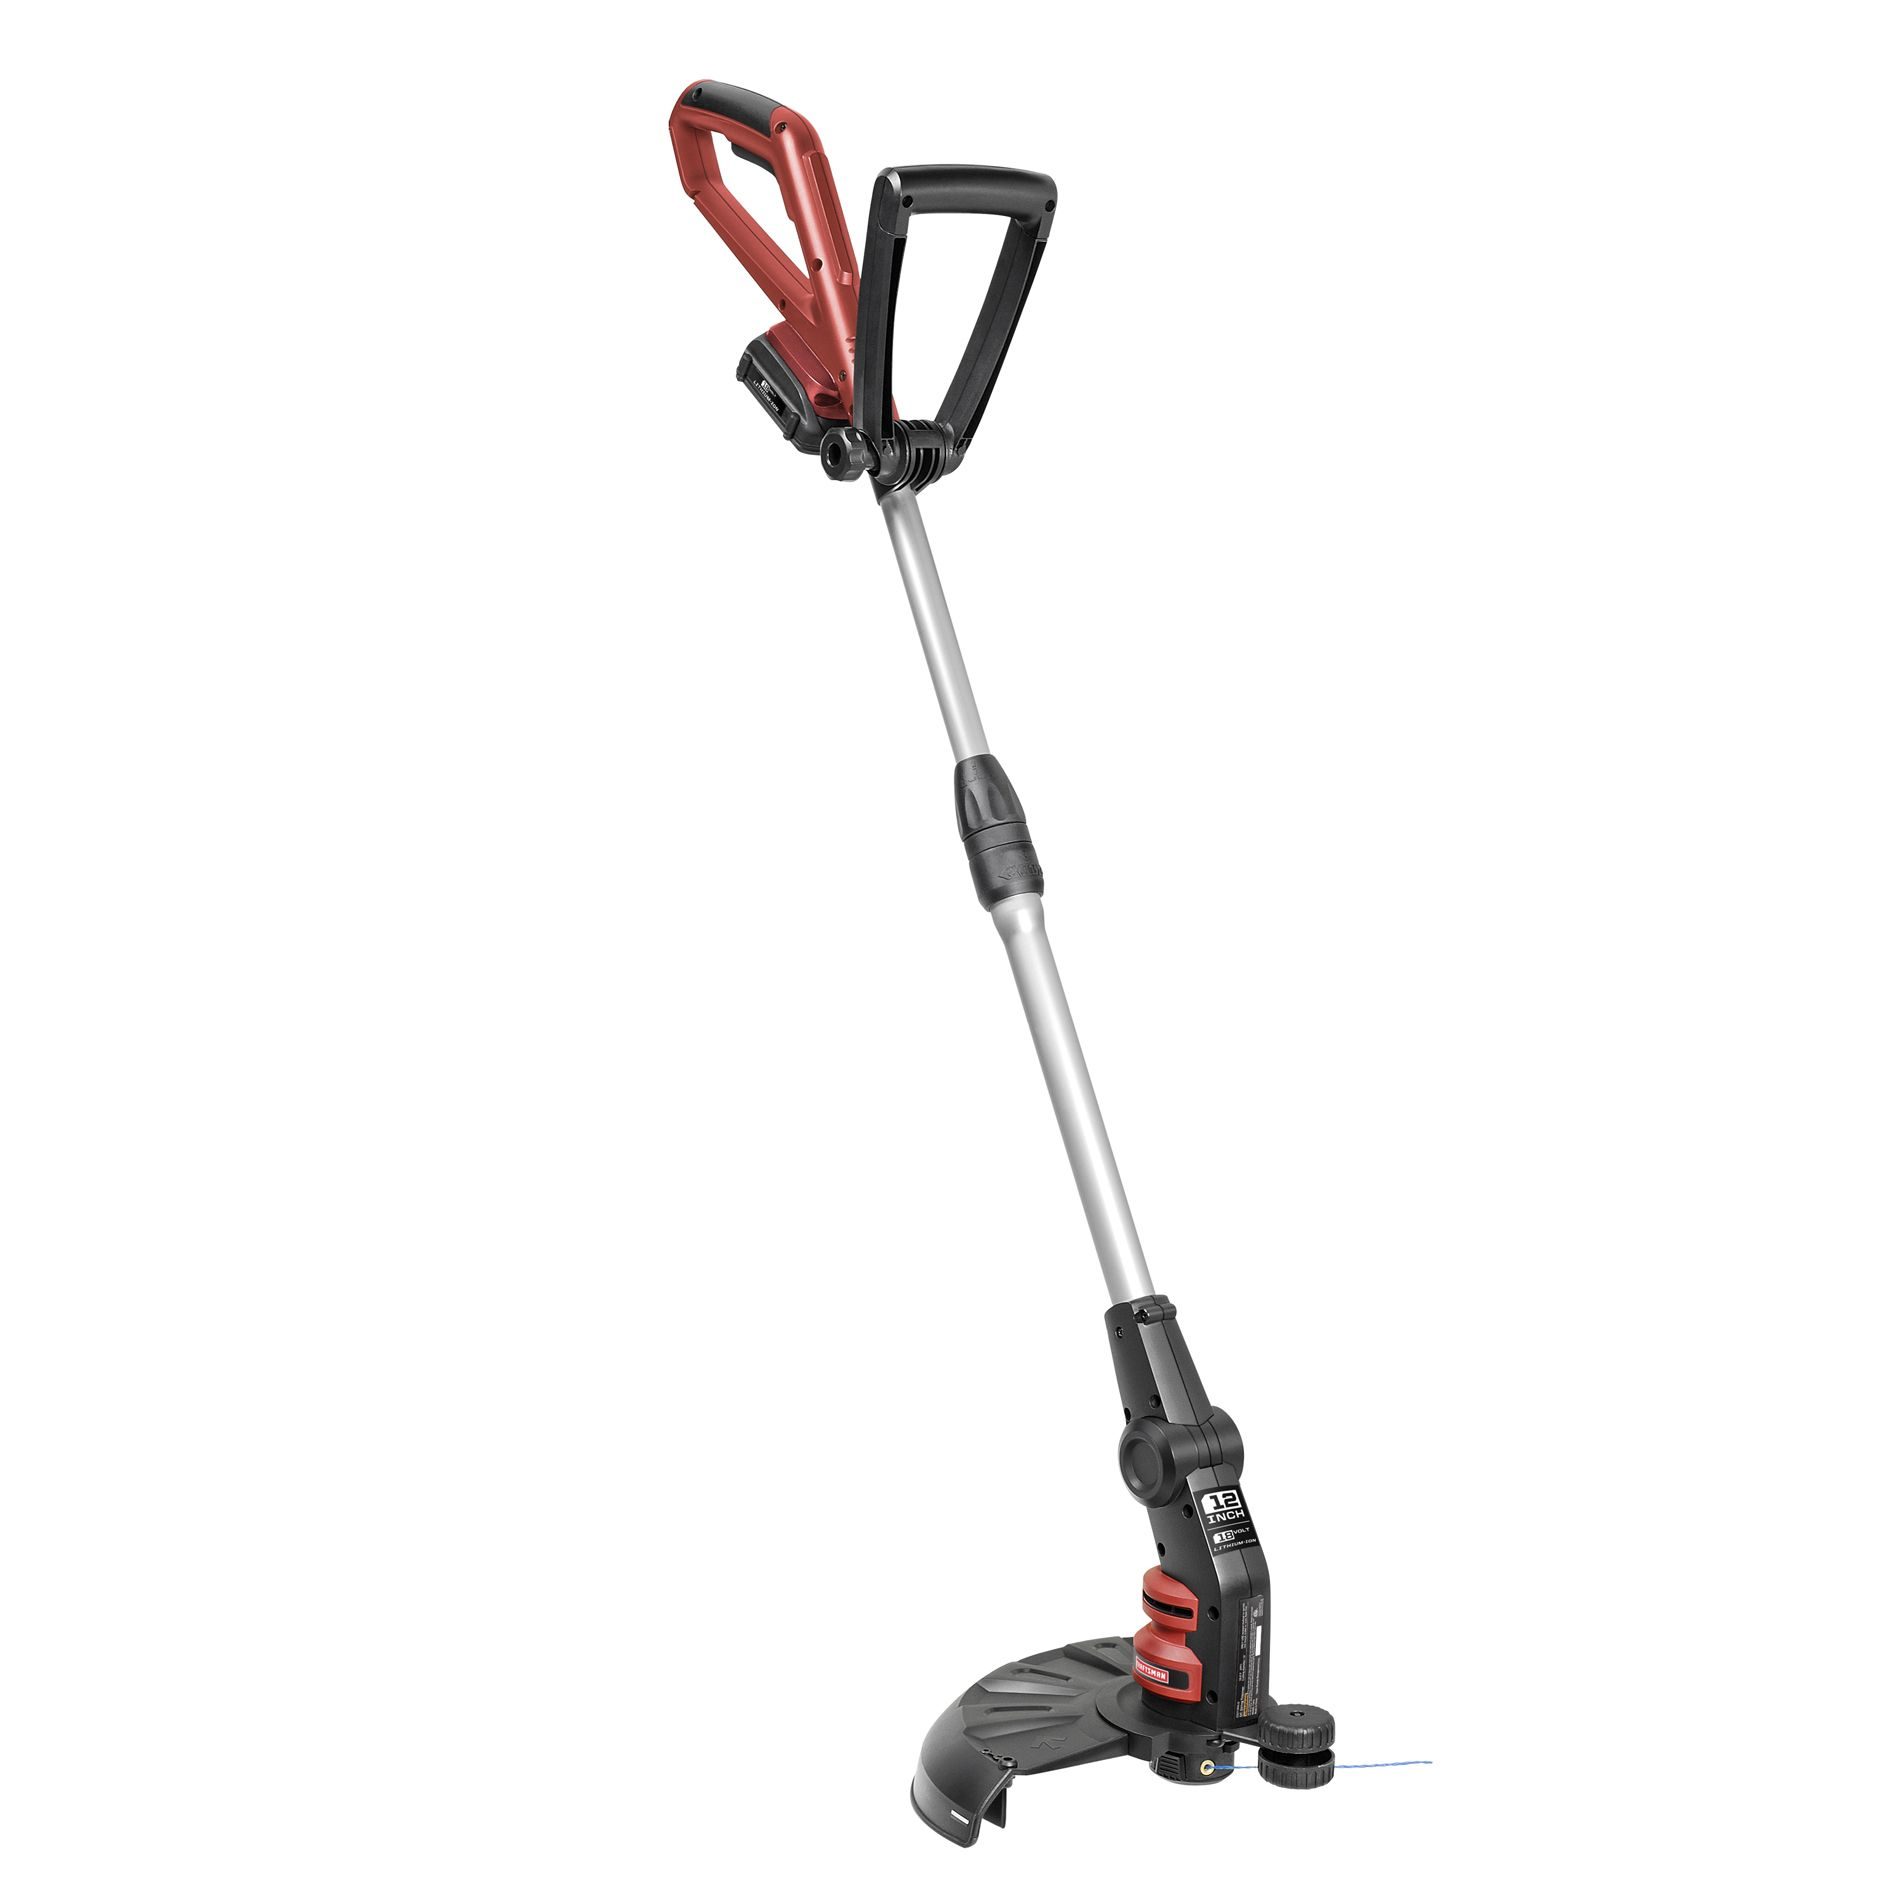 Craftsman 18V Grass Trimmer and Edger